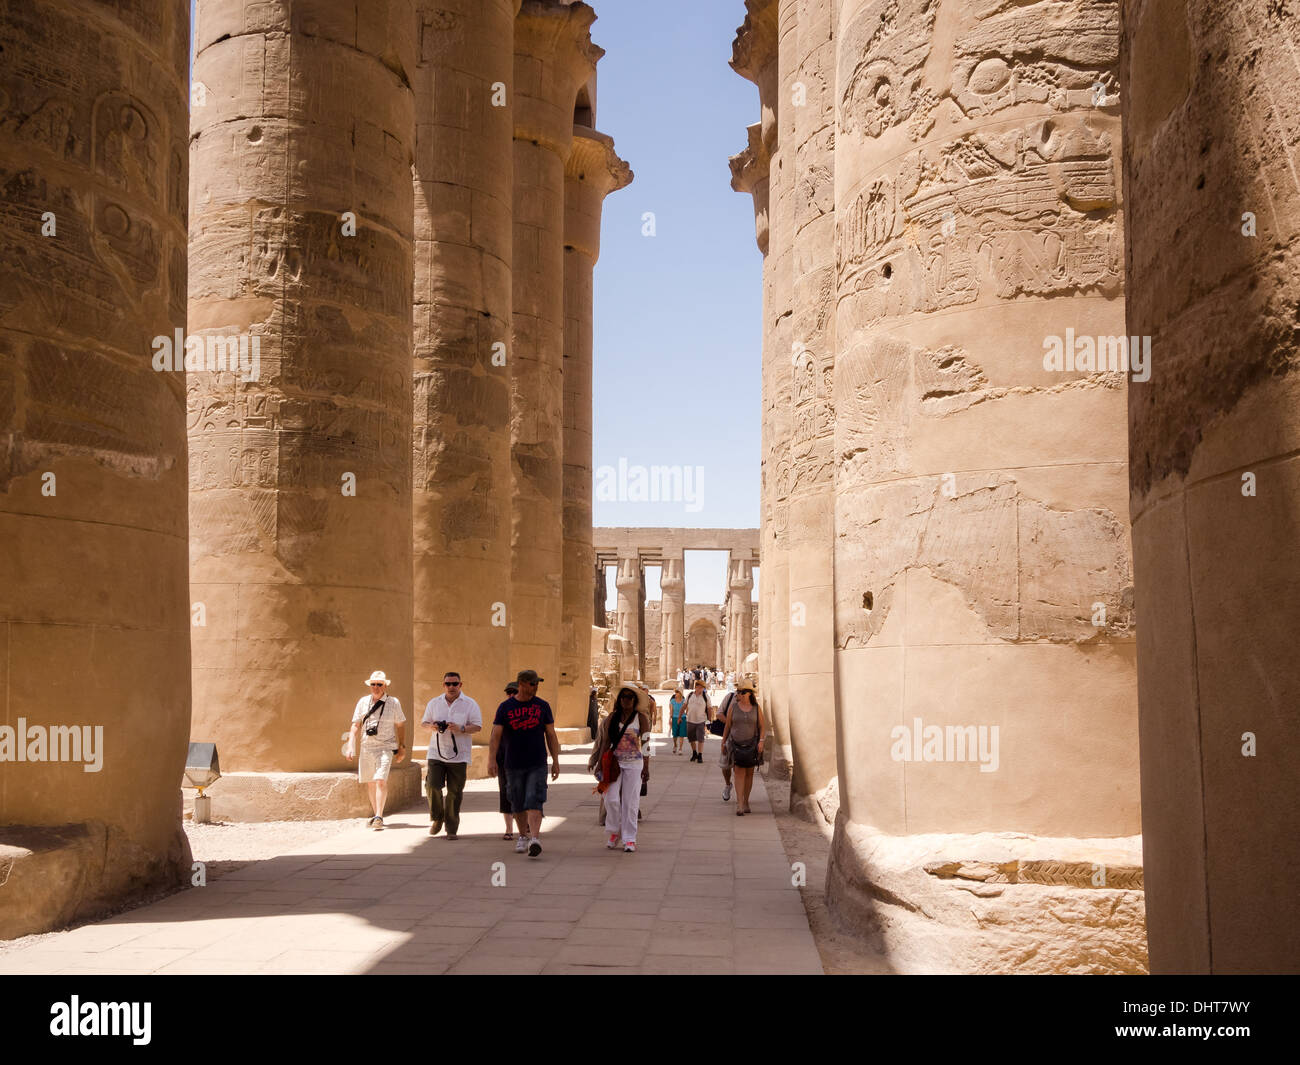 the-colonnade-of-amenhotep-iii-in-luxor-temple-egypt-DHT7WY.jpg